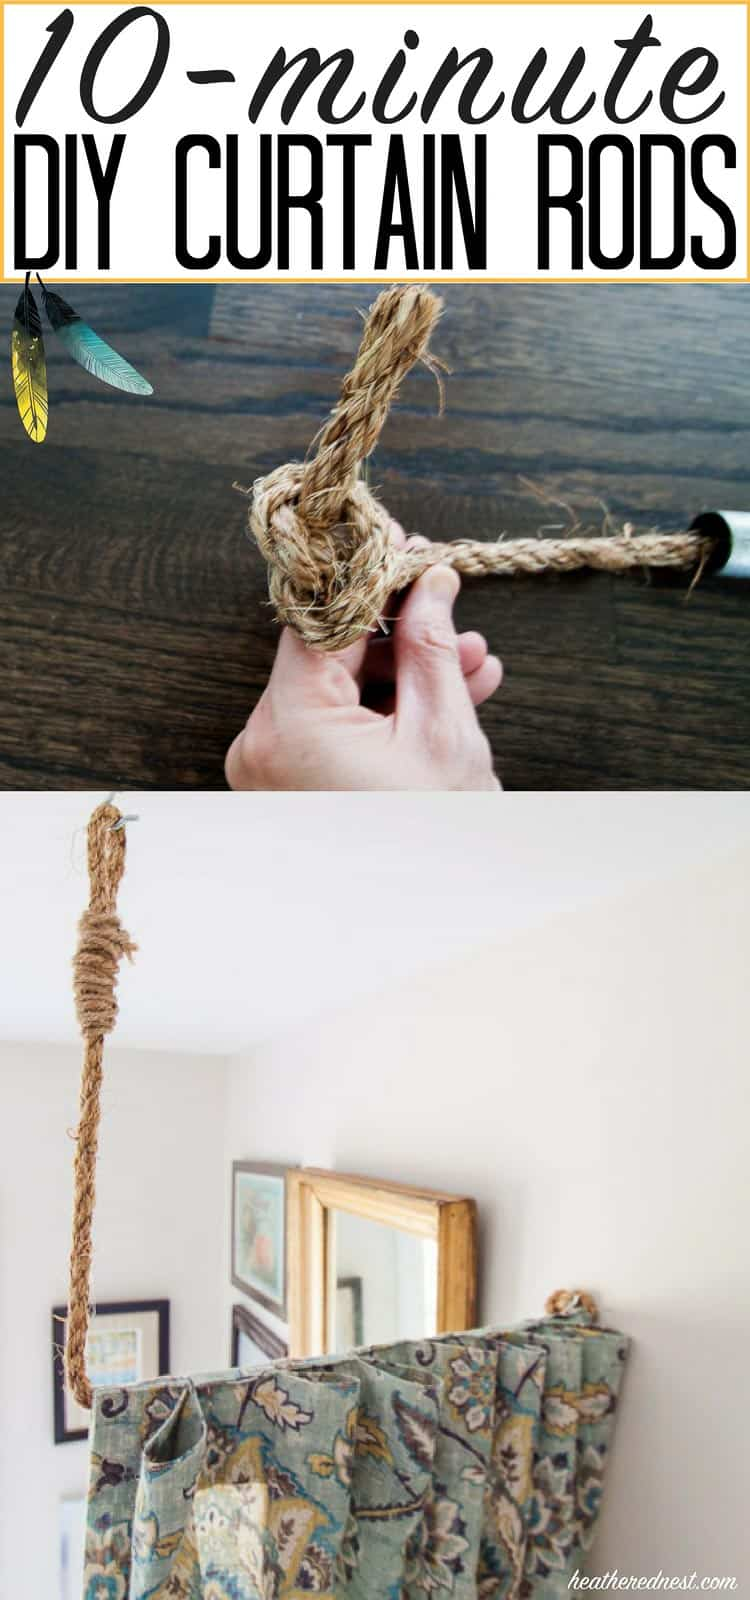 10-minute rope curtain rod